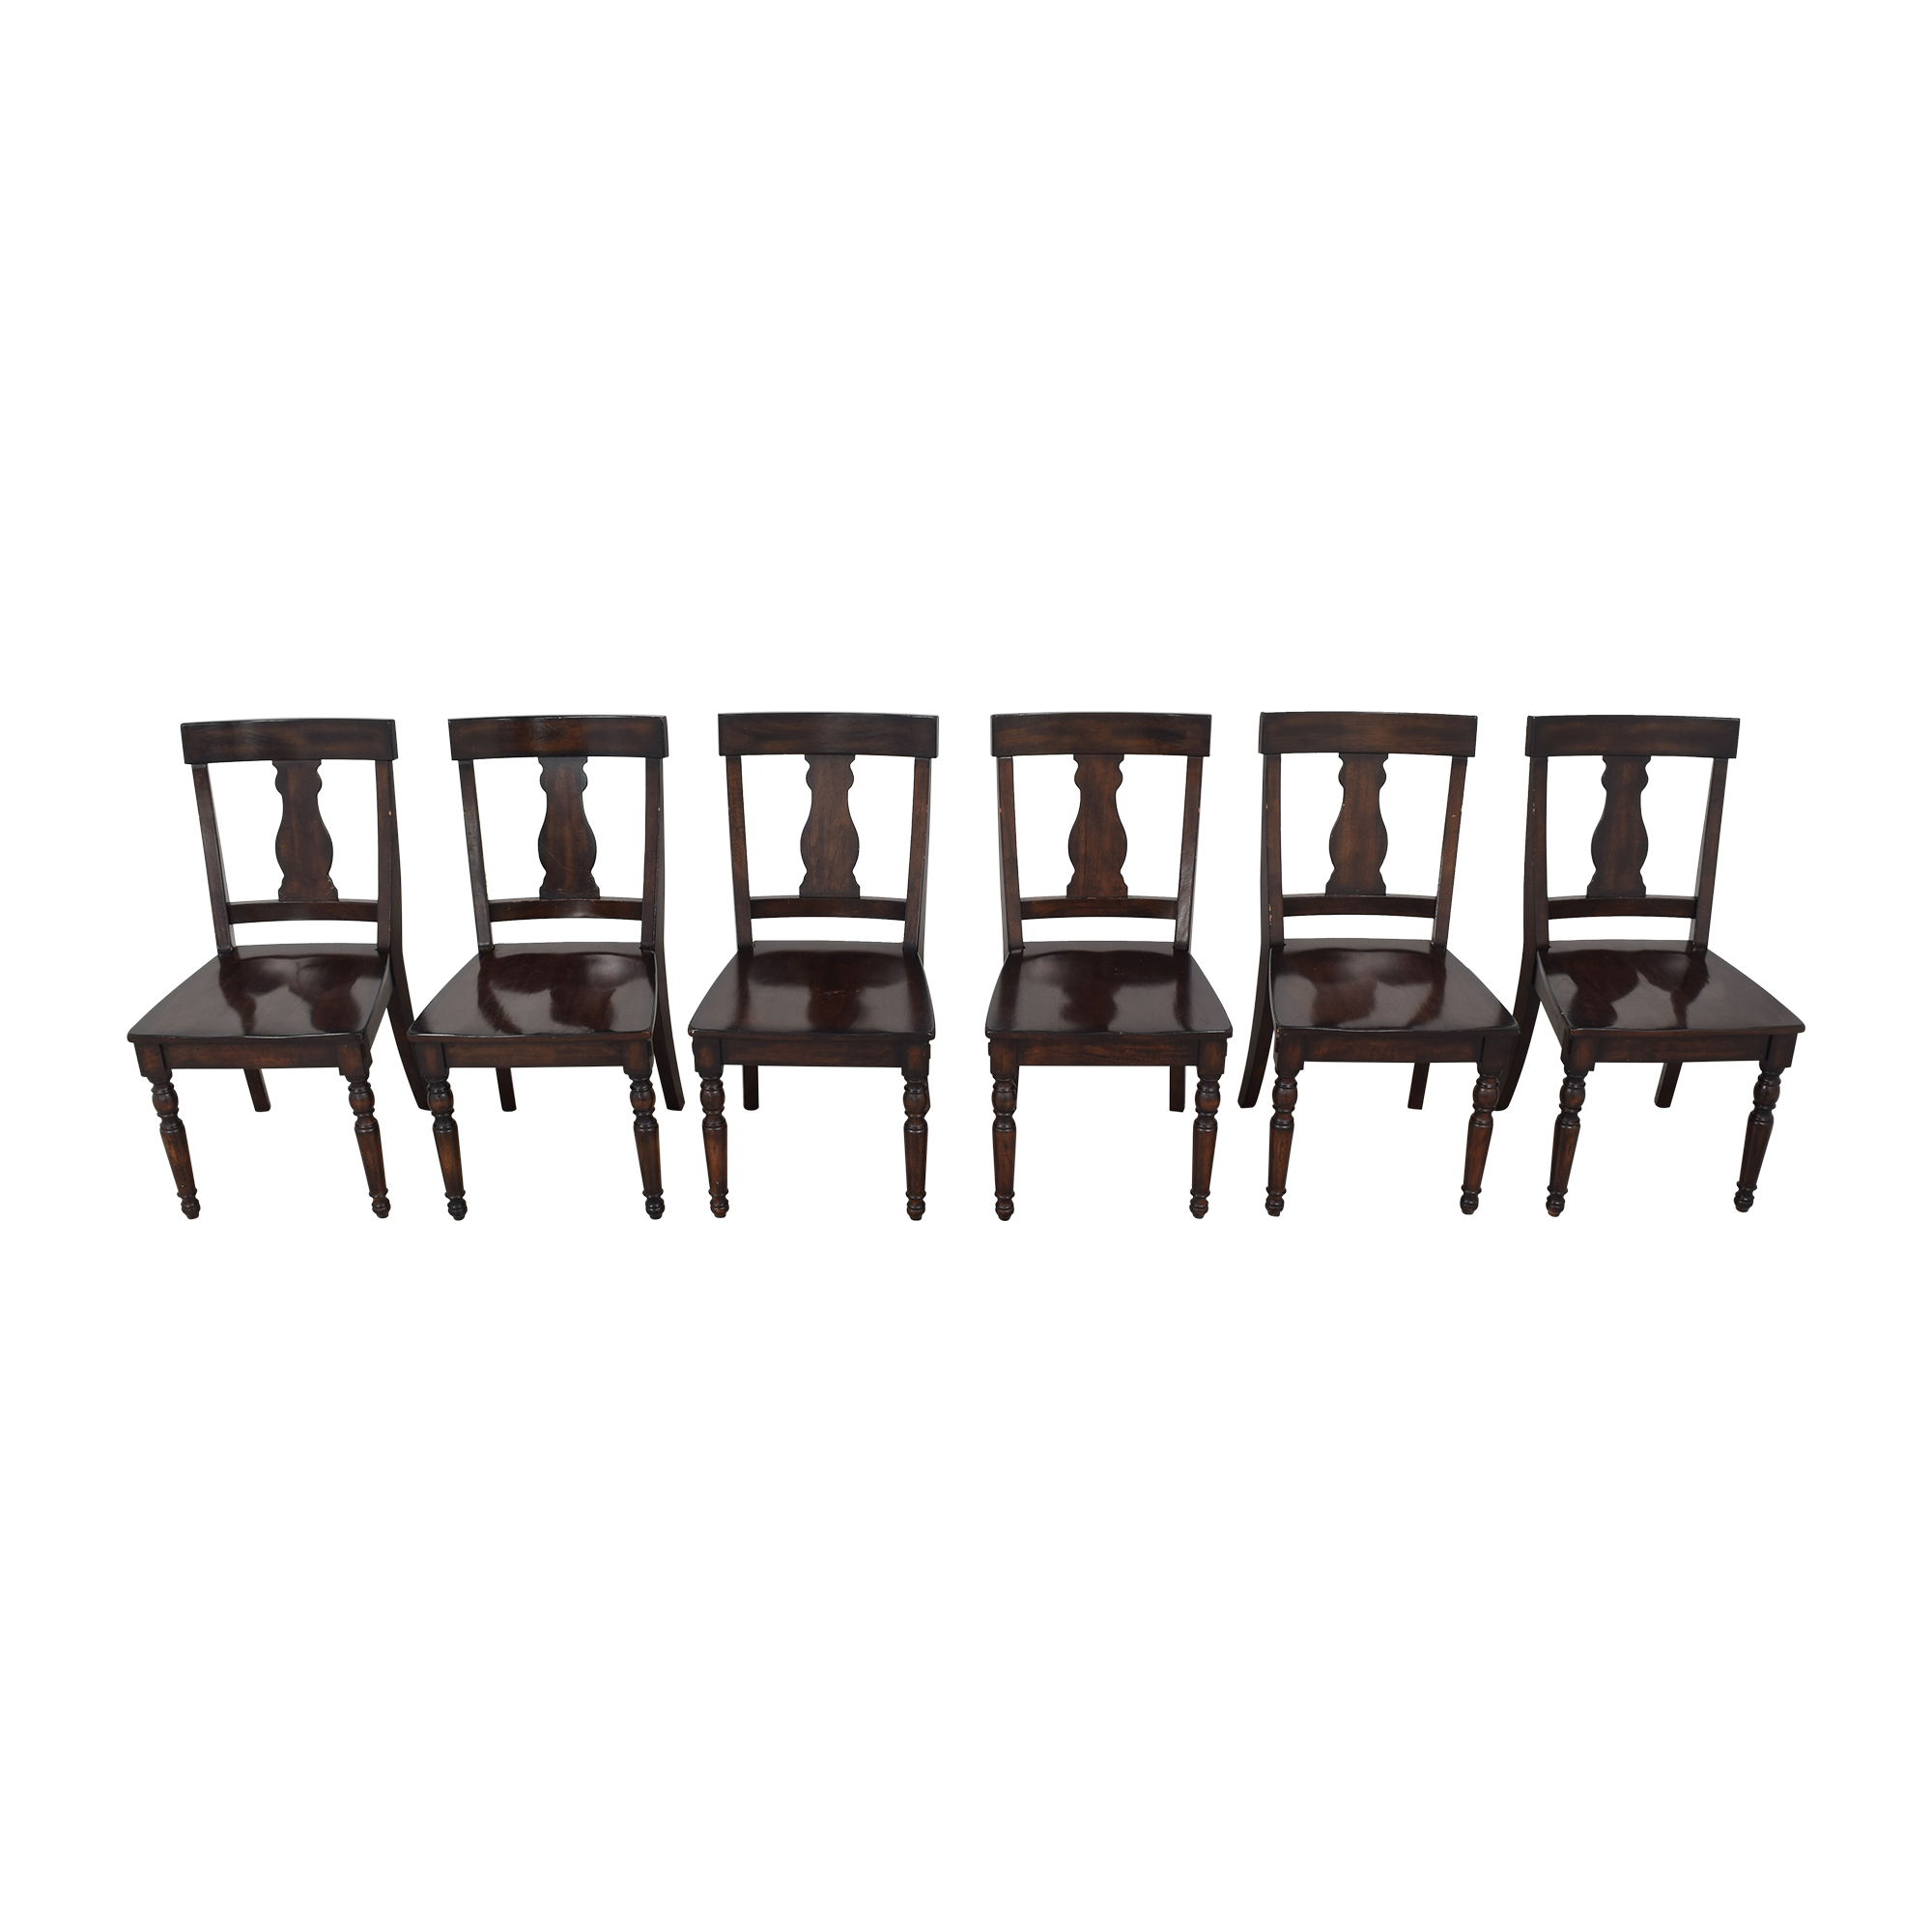 Pottery Barn Fiddleback Dining Chairs sale